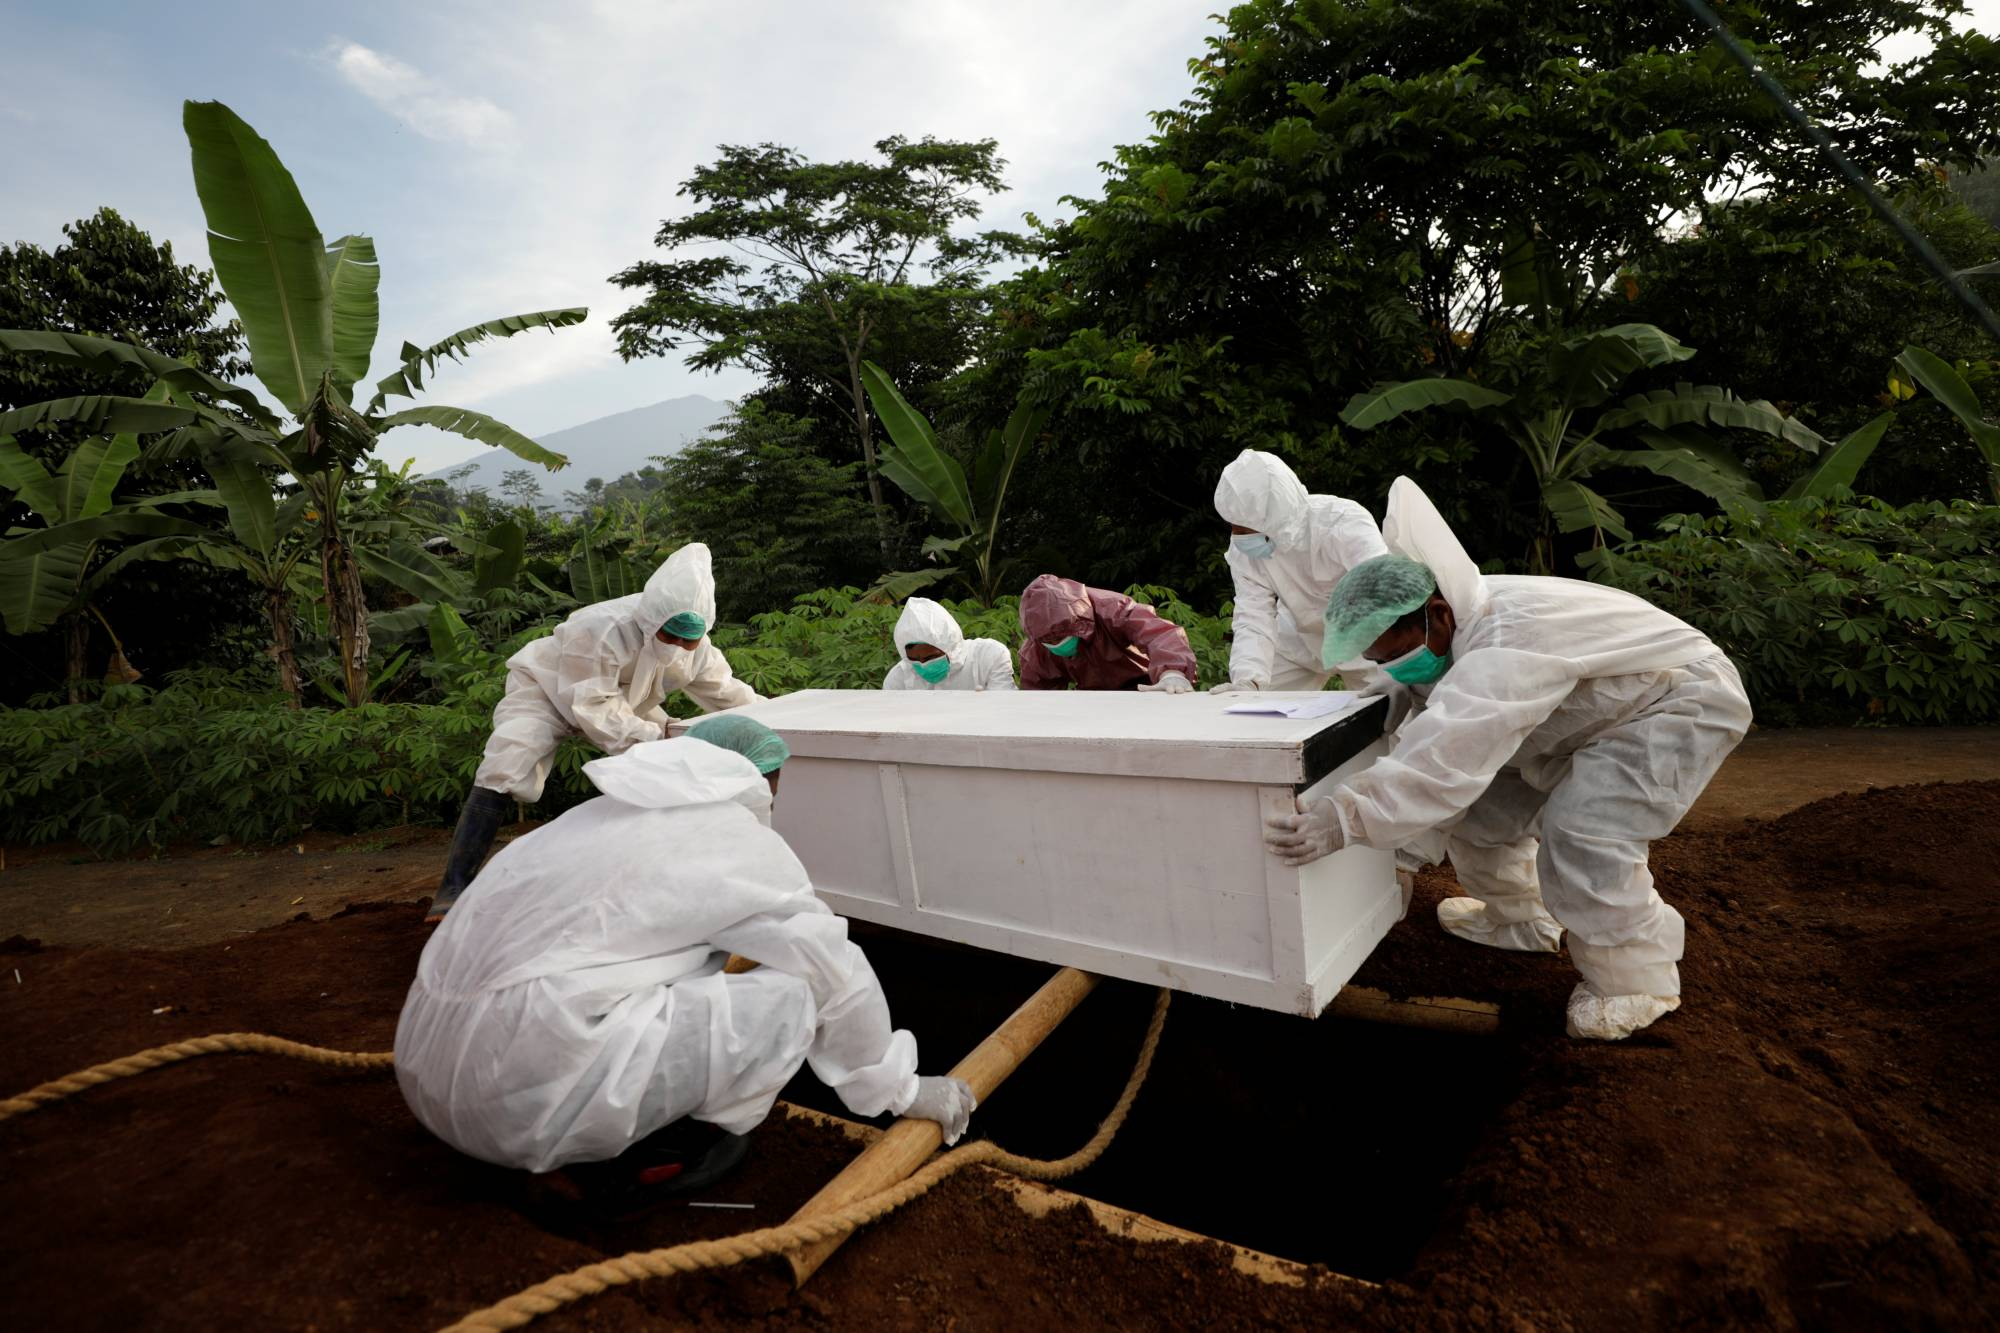 A person who died from COVID-19 complications is laid to rest in Bogor, West Java province, Indonesia, on July 8. The country, like others in the region, is struggling to cope with a devastating wave of cases driven by the highly contagious delta variant. |  REUTERS